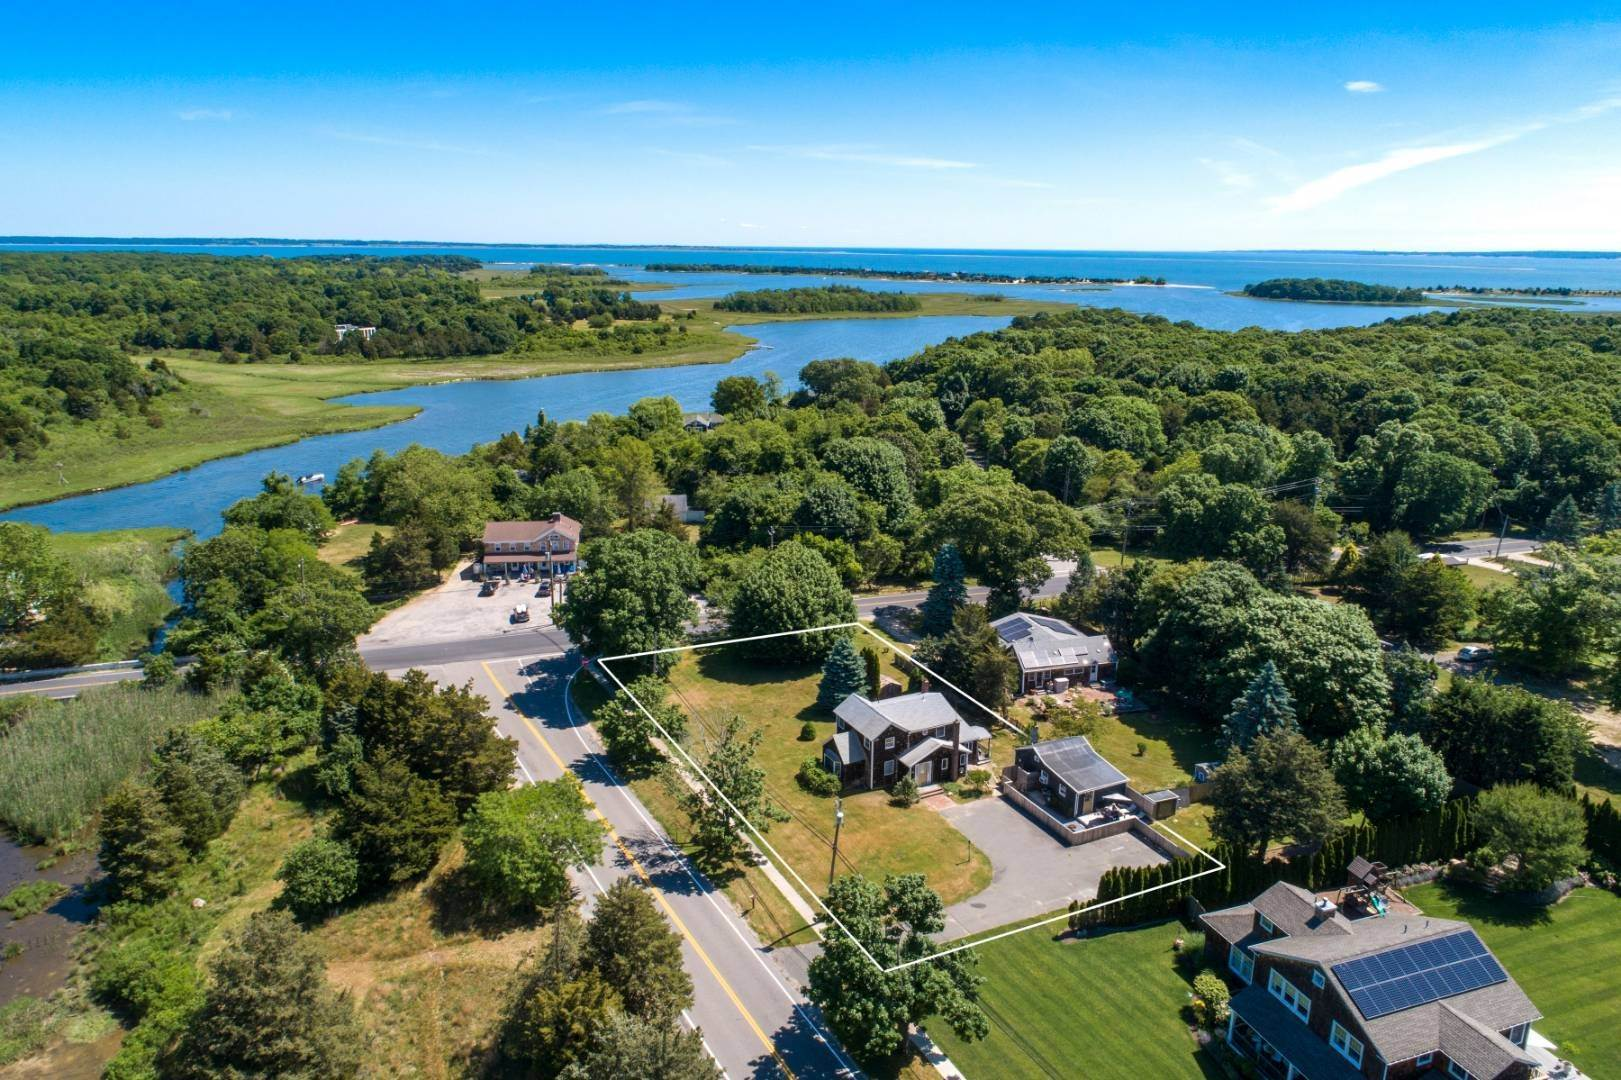 Single Family Home for Sale at A Rare Opportunity In Historic Springs 76 School Street, East Hampton, NY 11937